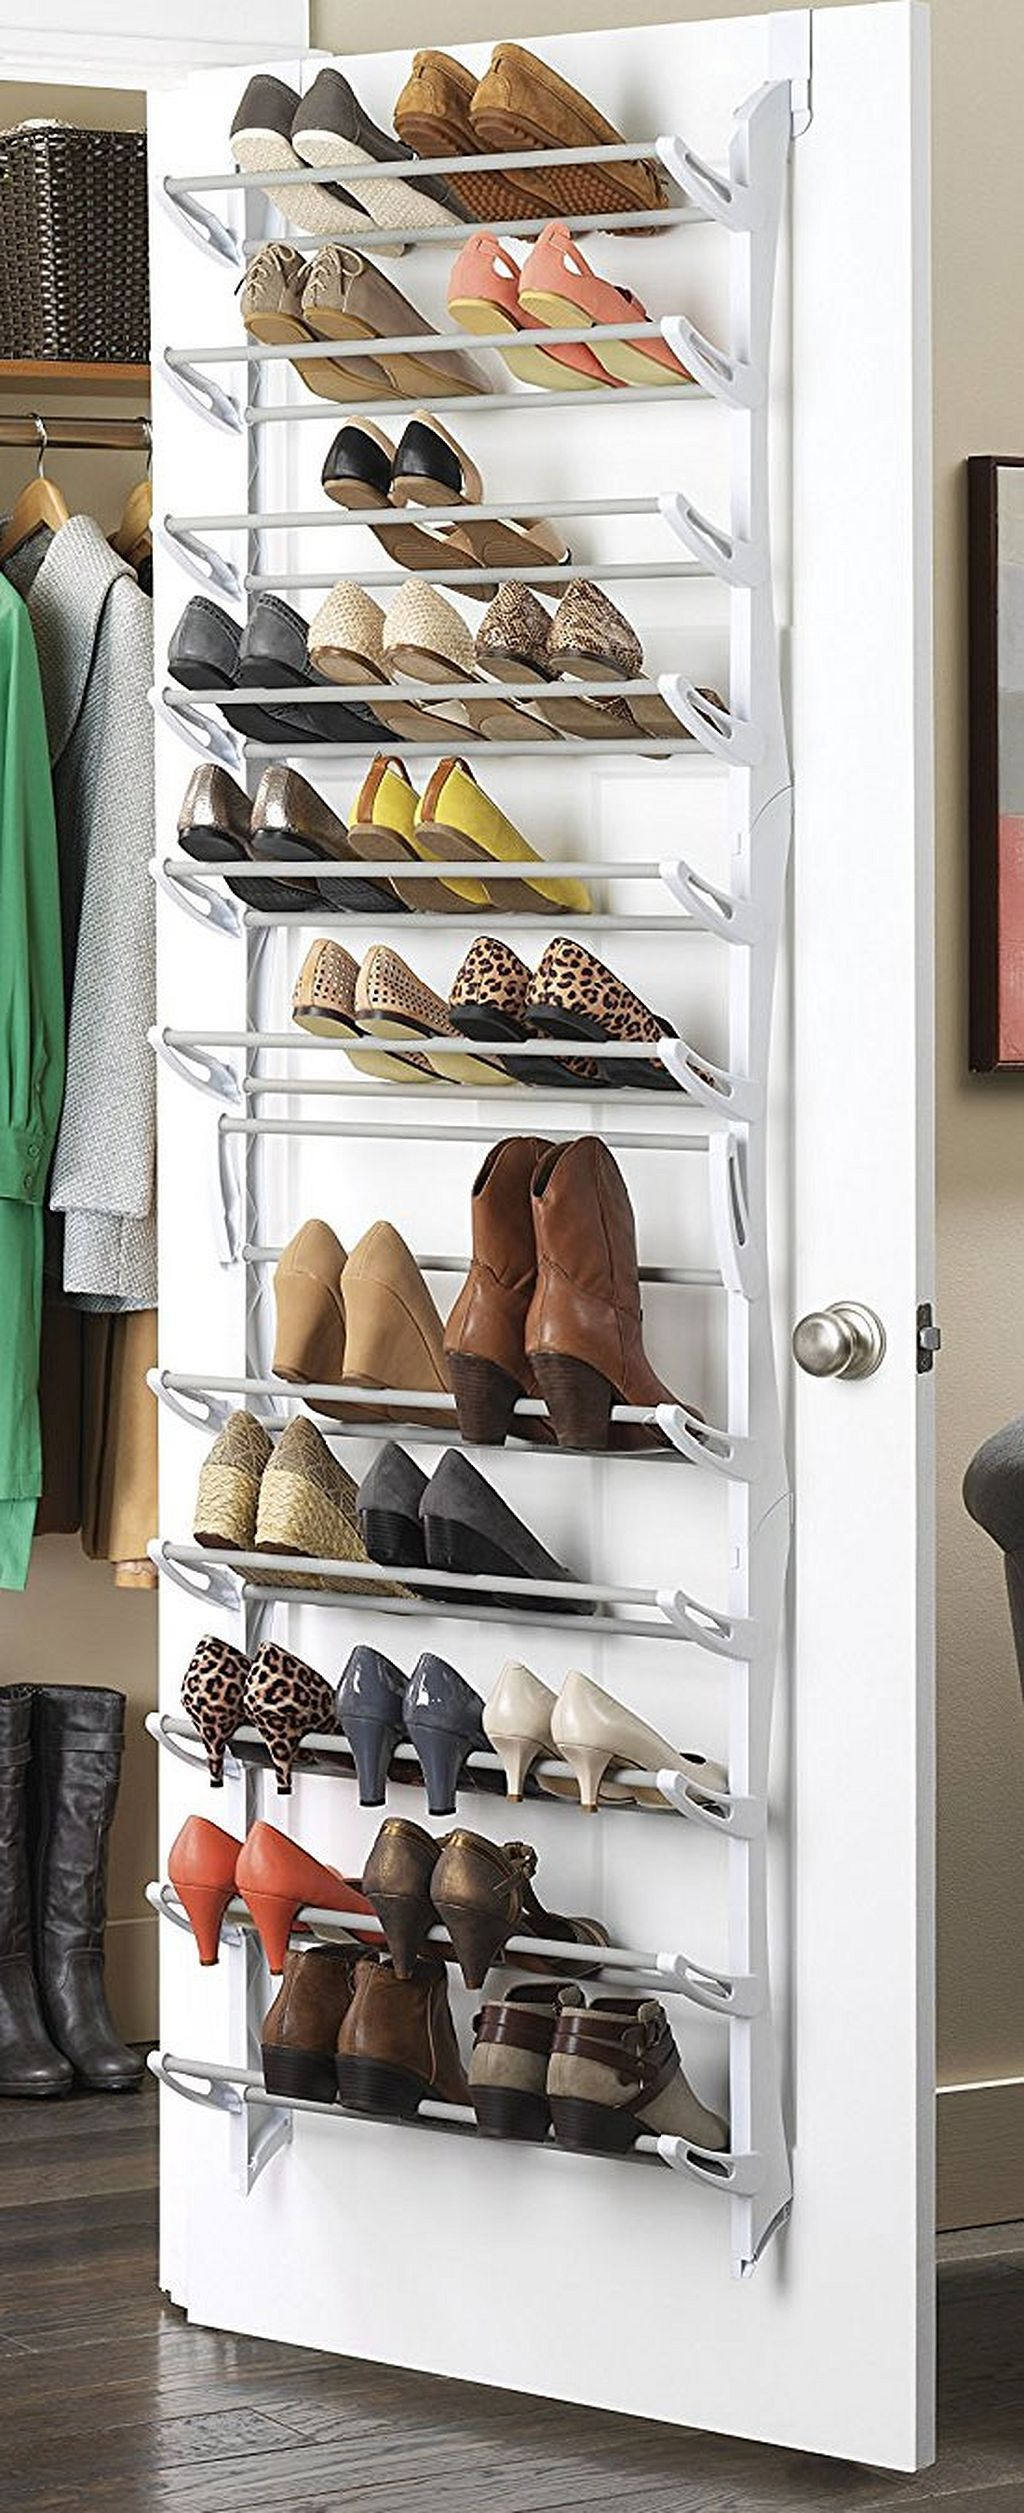 20+ DIY Shoes Storage Ideas That Will Save Your Time | Pinterest